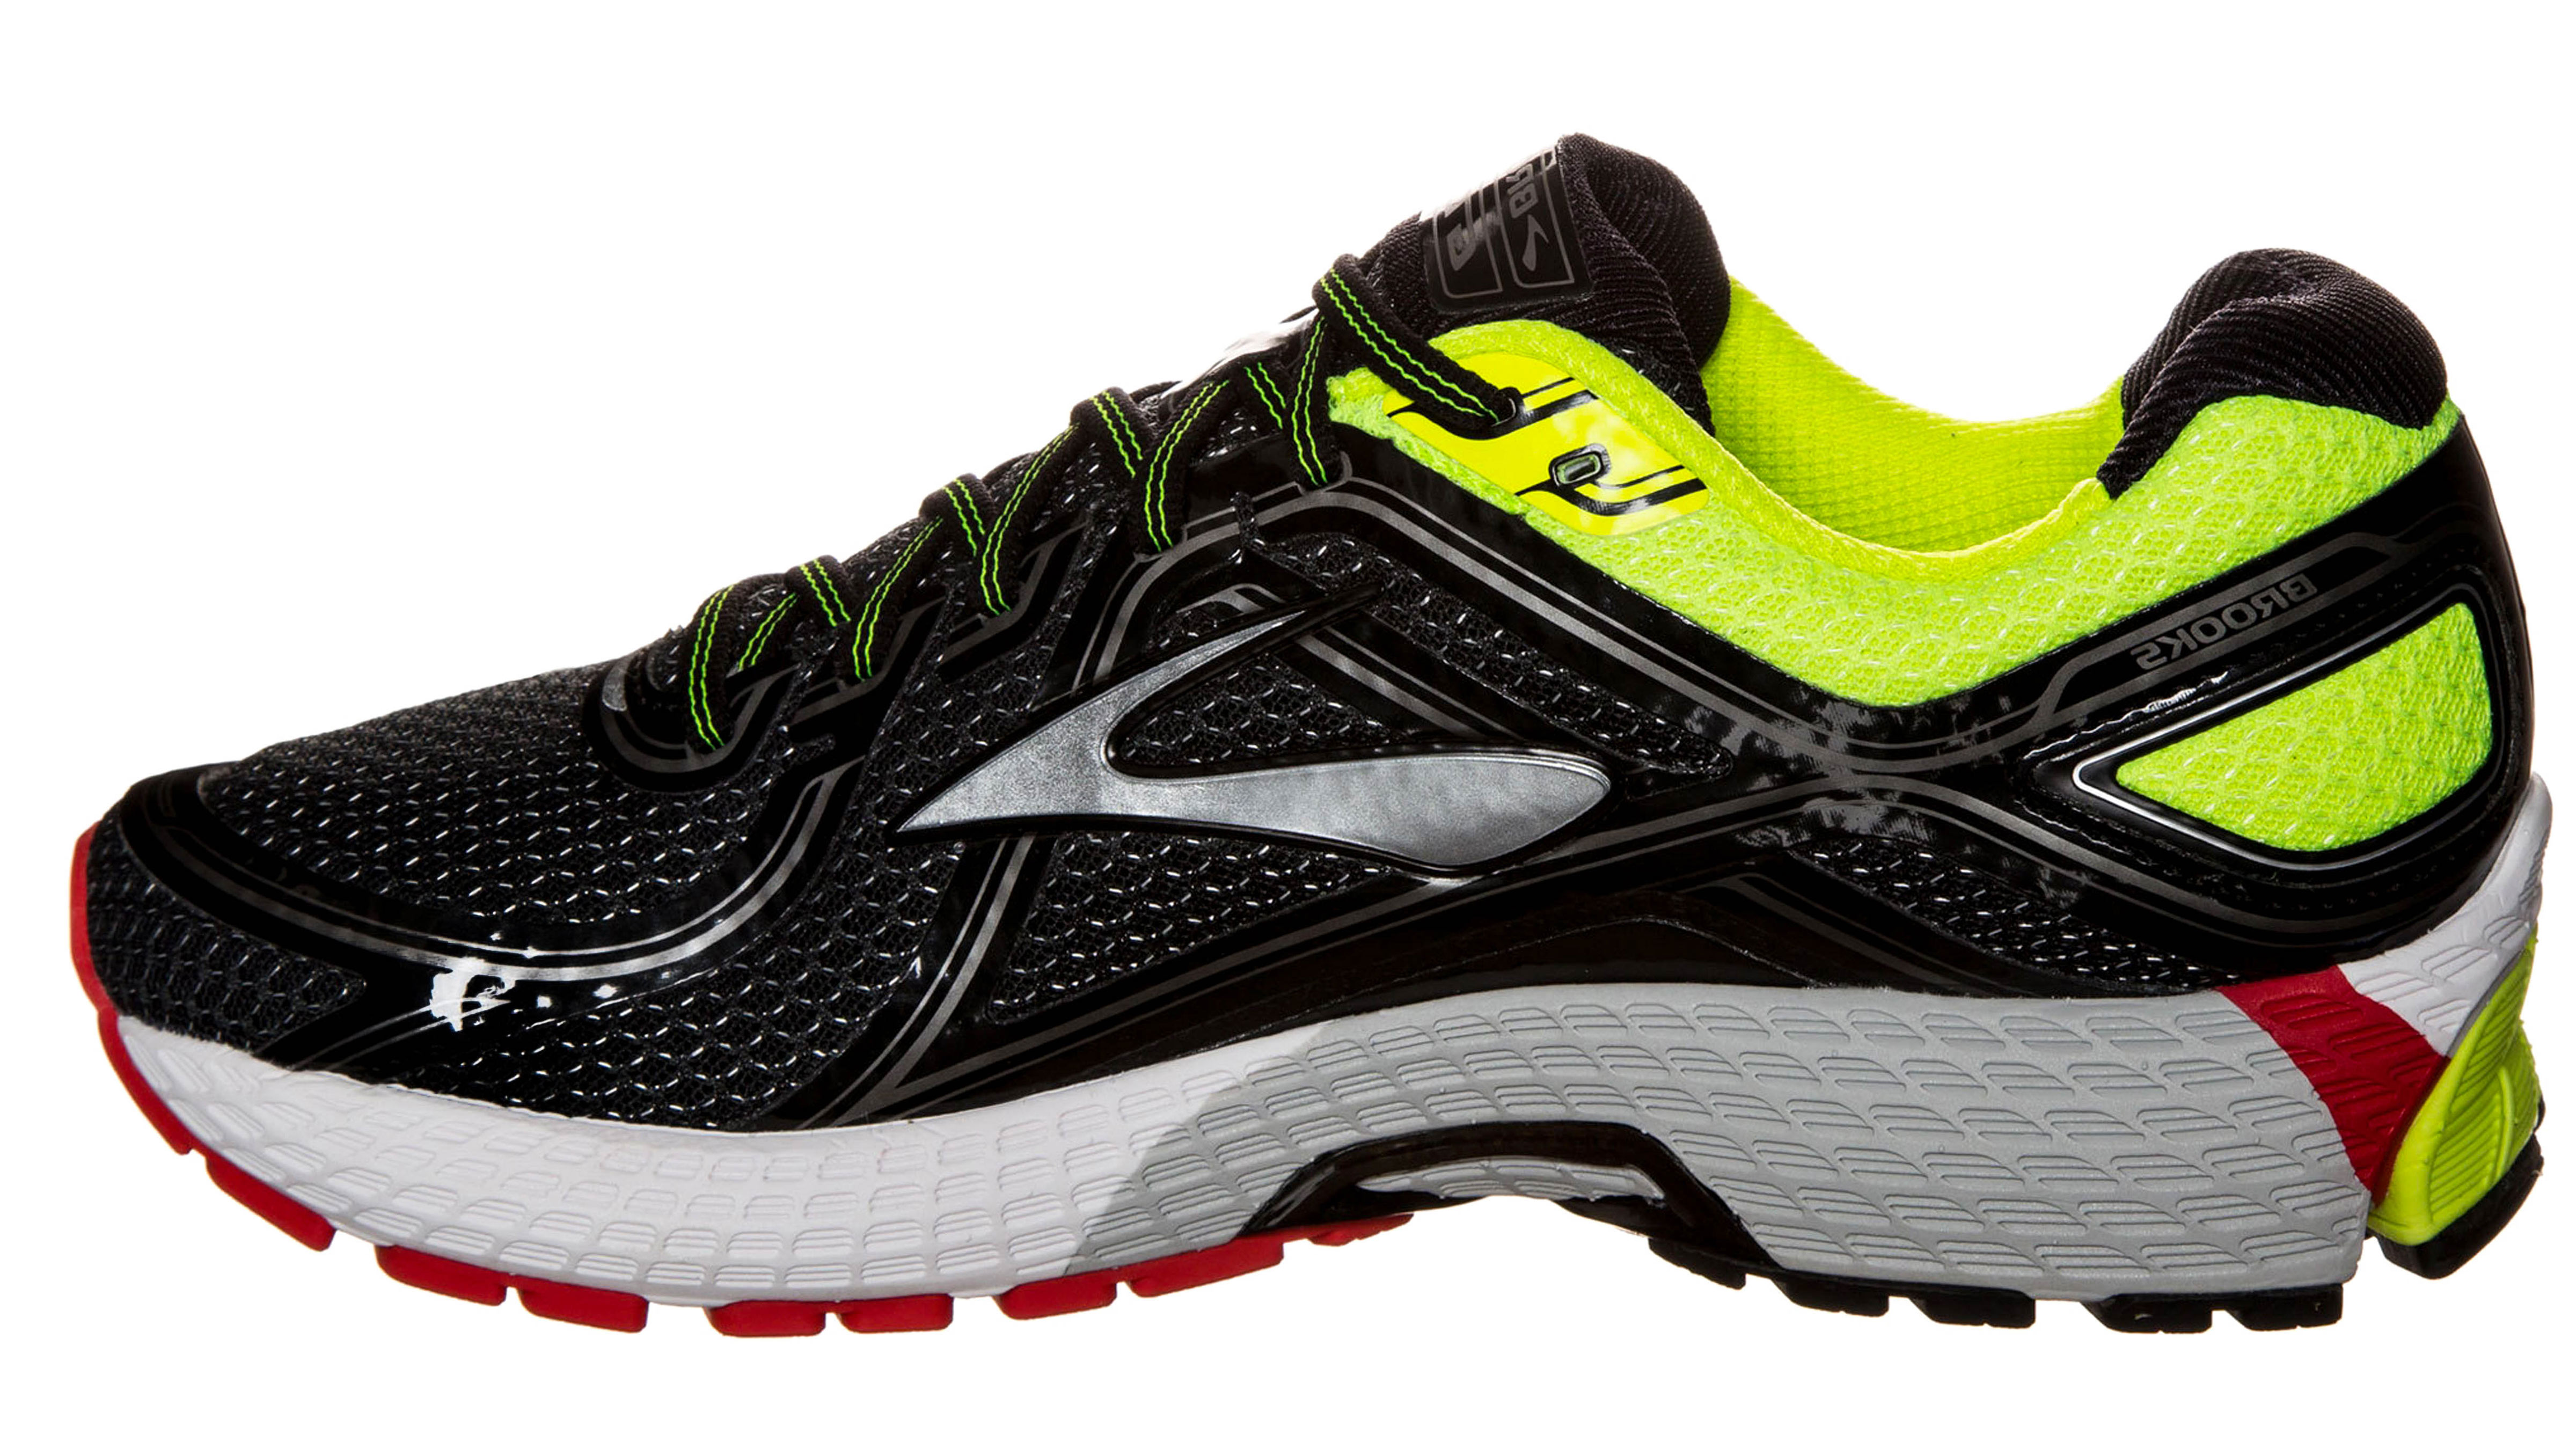 Brooksadrenaline Gts  Running Shoe Men